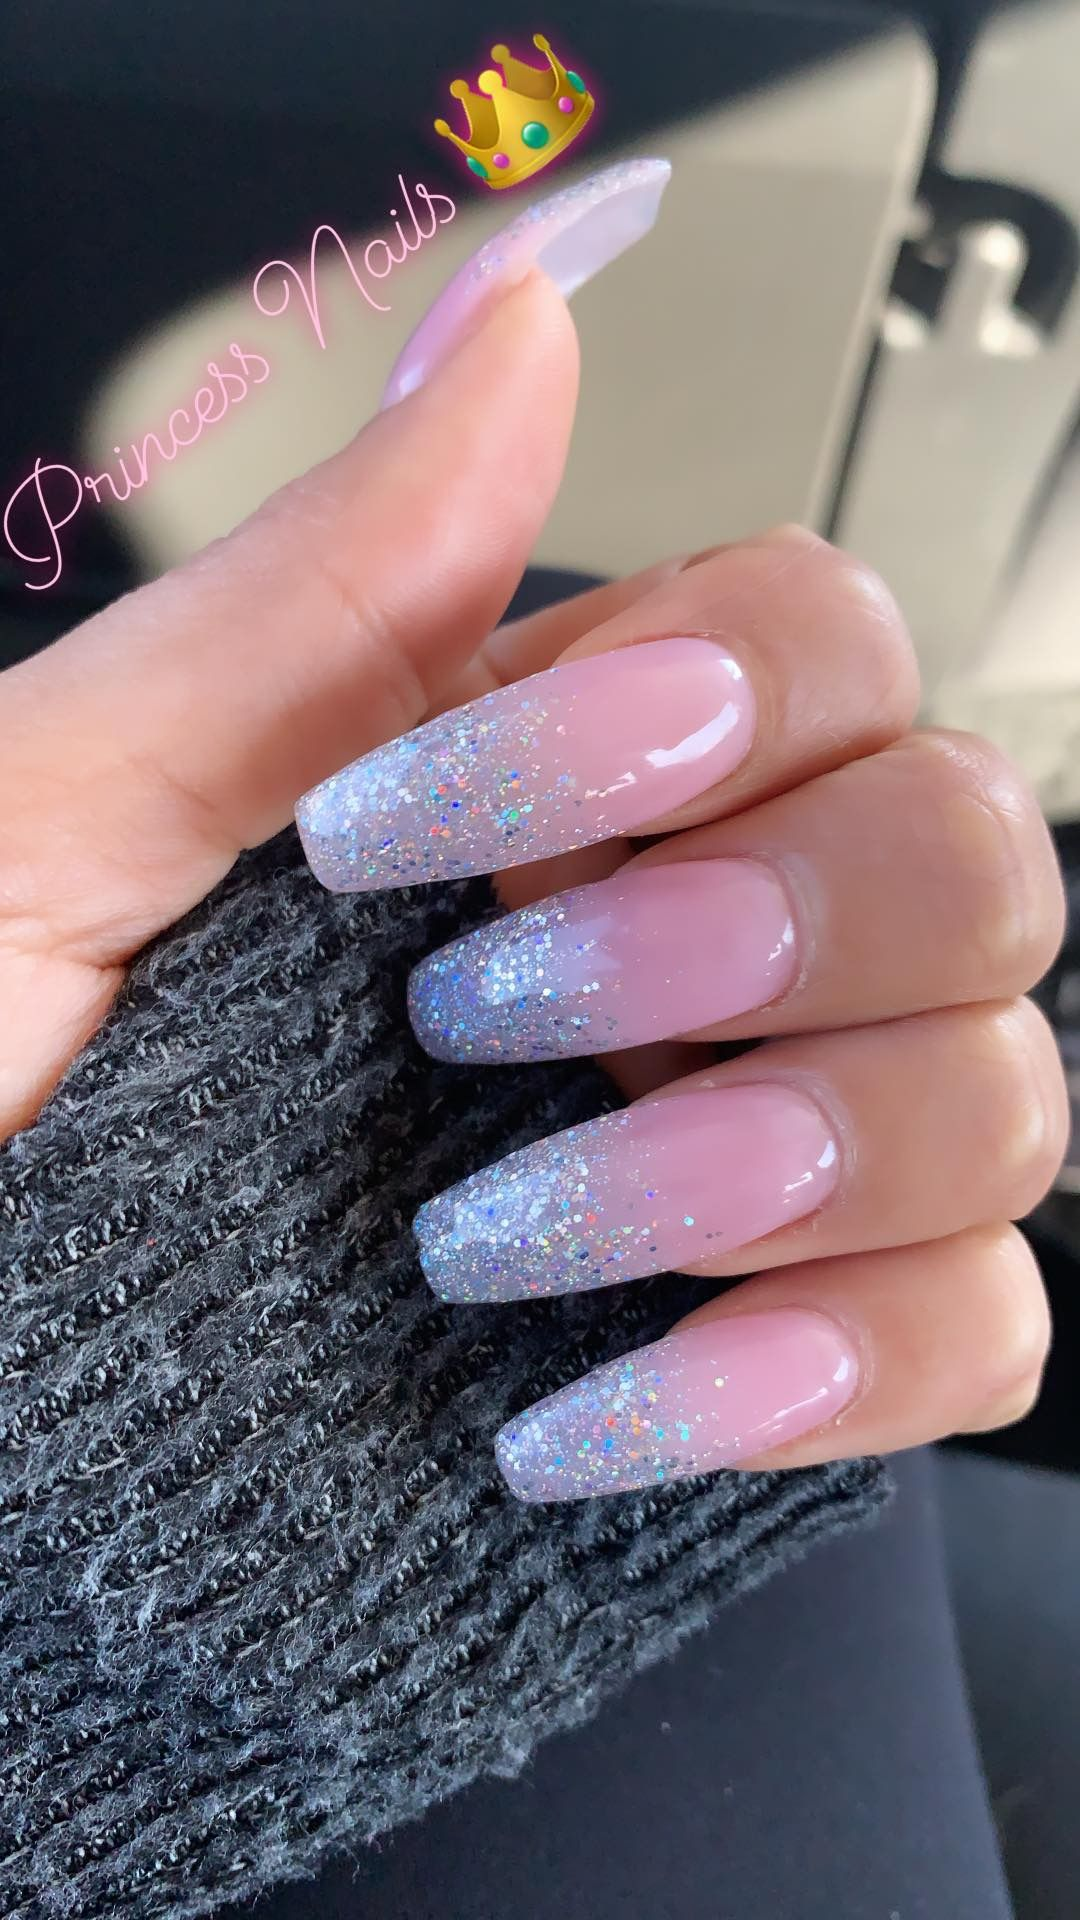 Princess Coffin Nails! 👑 in 2019 | Coffin shape nails ...